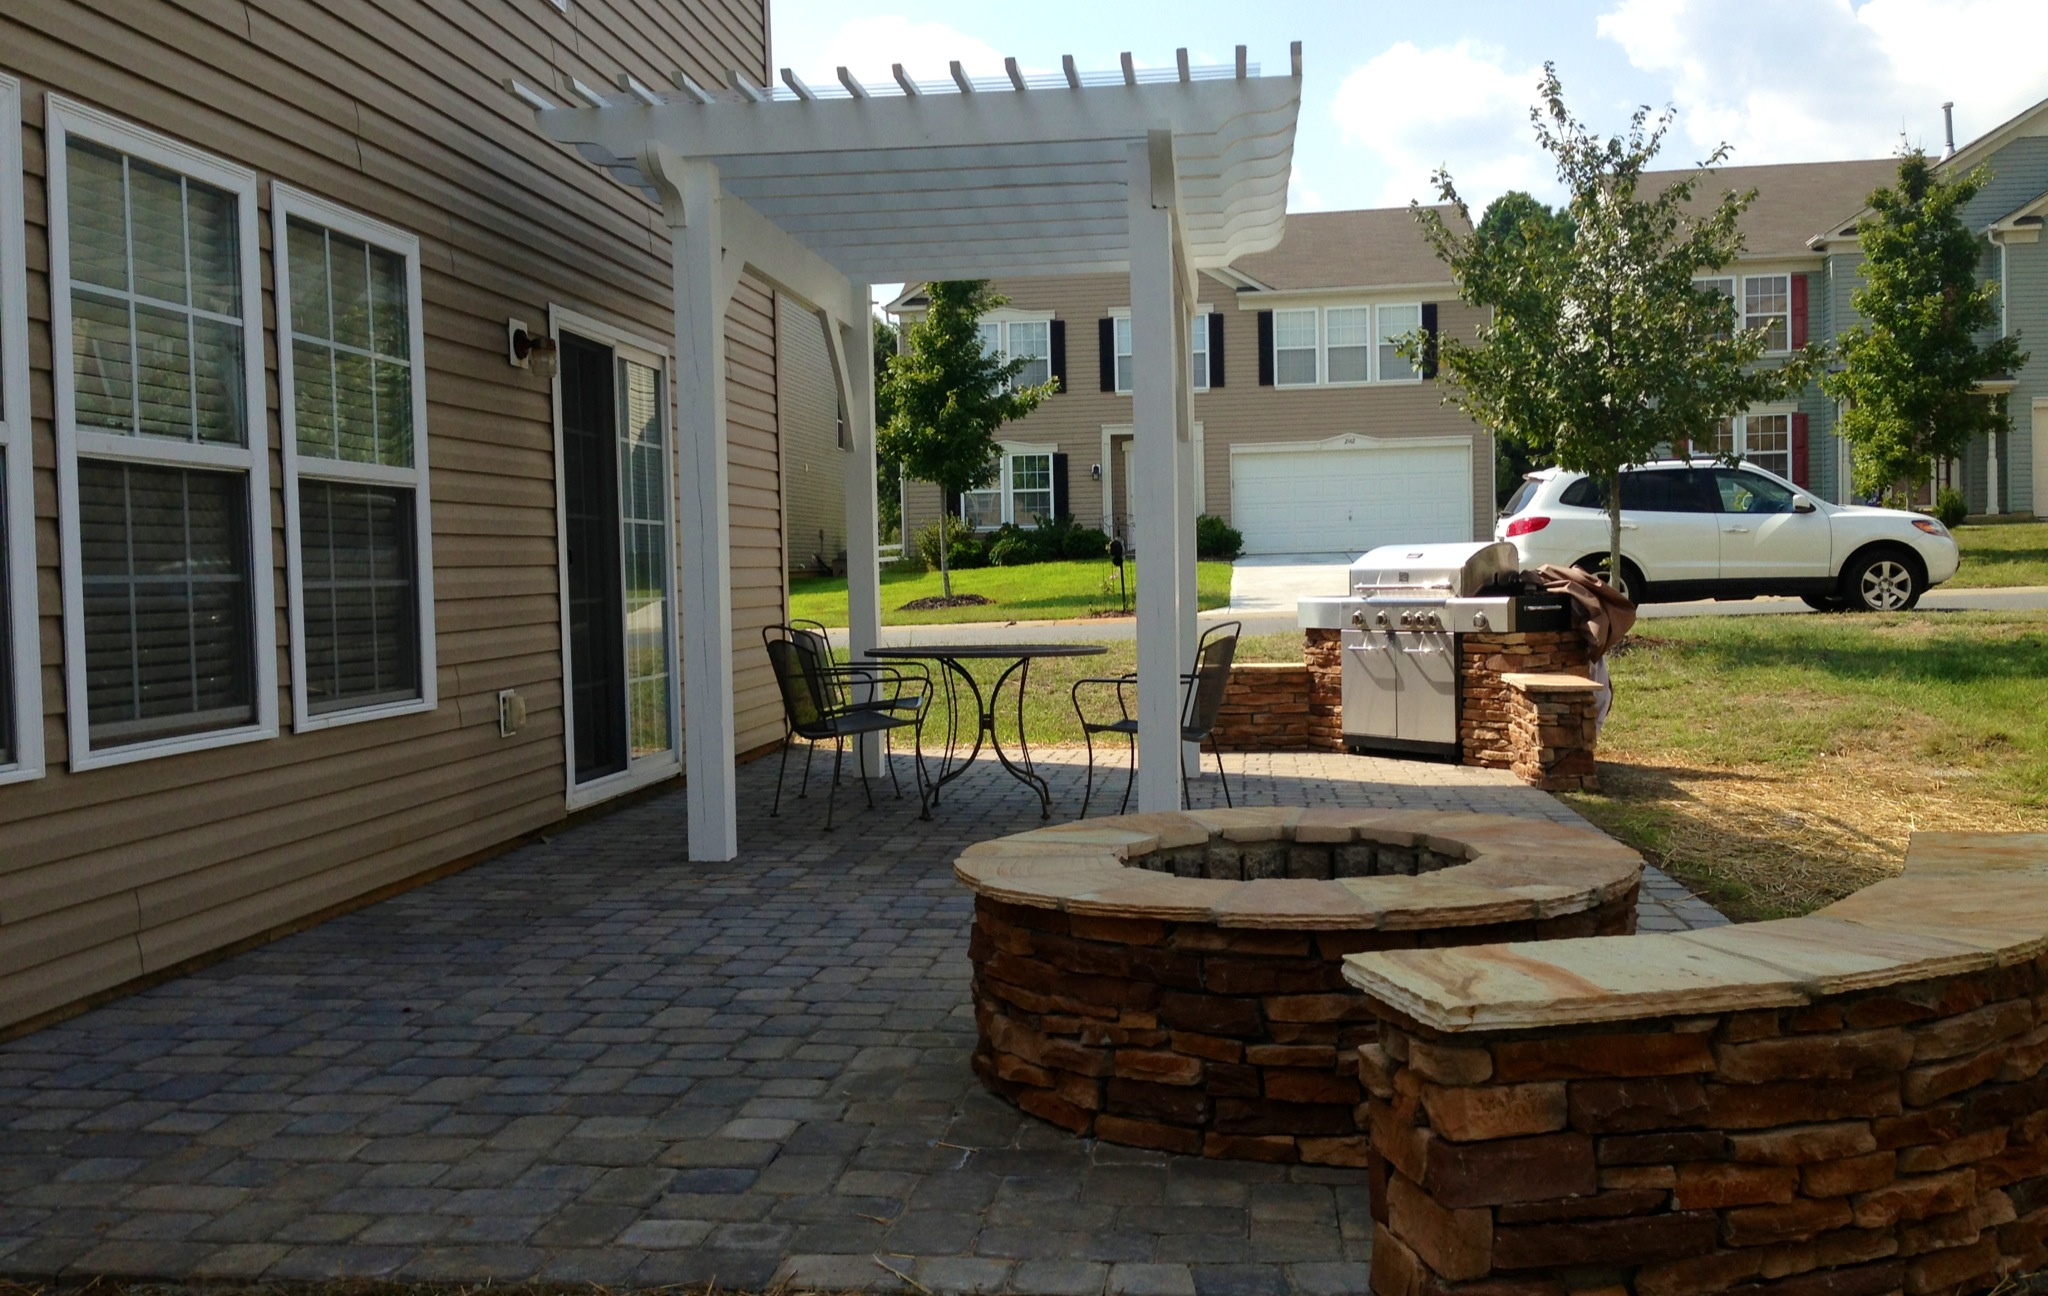 A Paver Patio with new seating bench and fire pit for your family and kids to enjoy during a nice summer night.